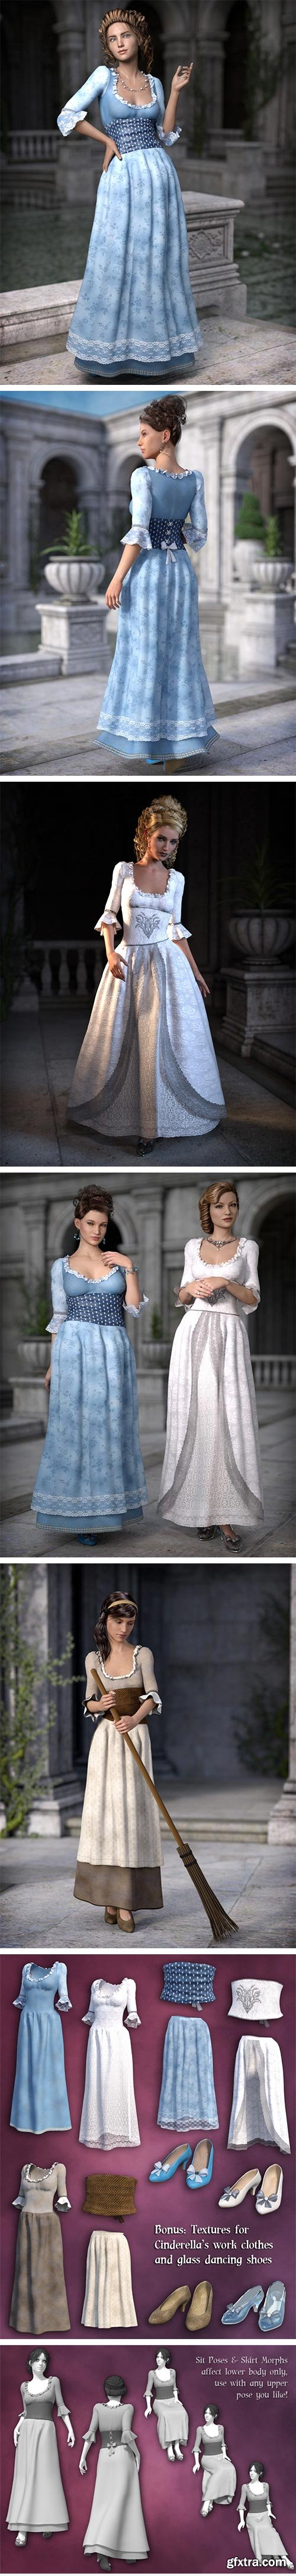 DAZ3D - Fairytale Princess for Genesis 3 Female(s) 24395